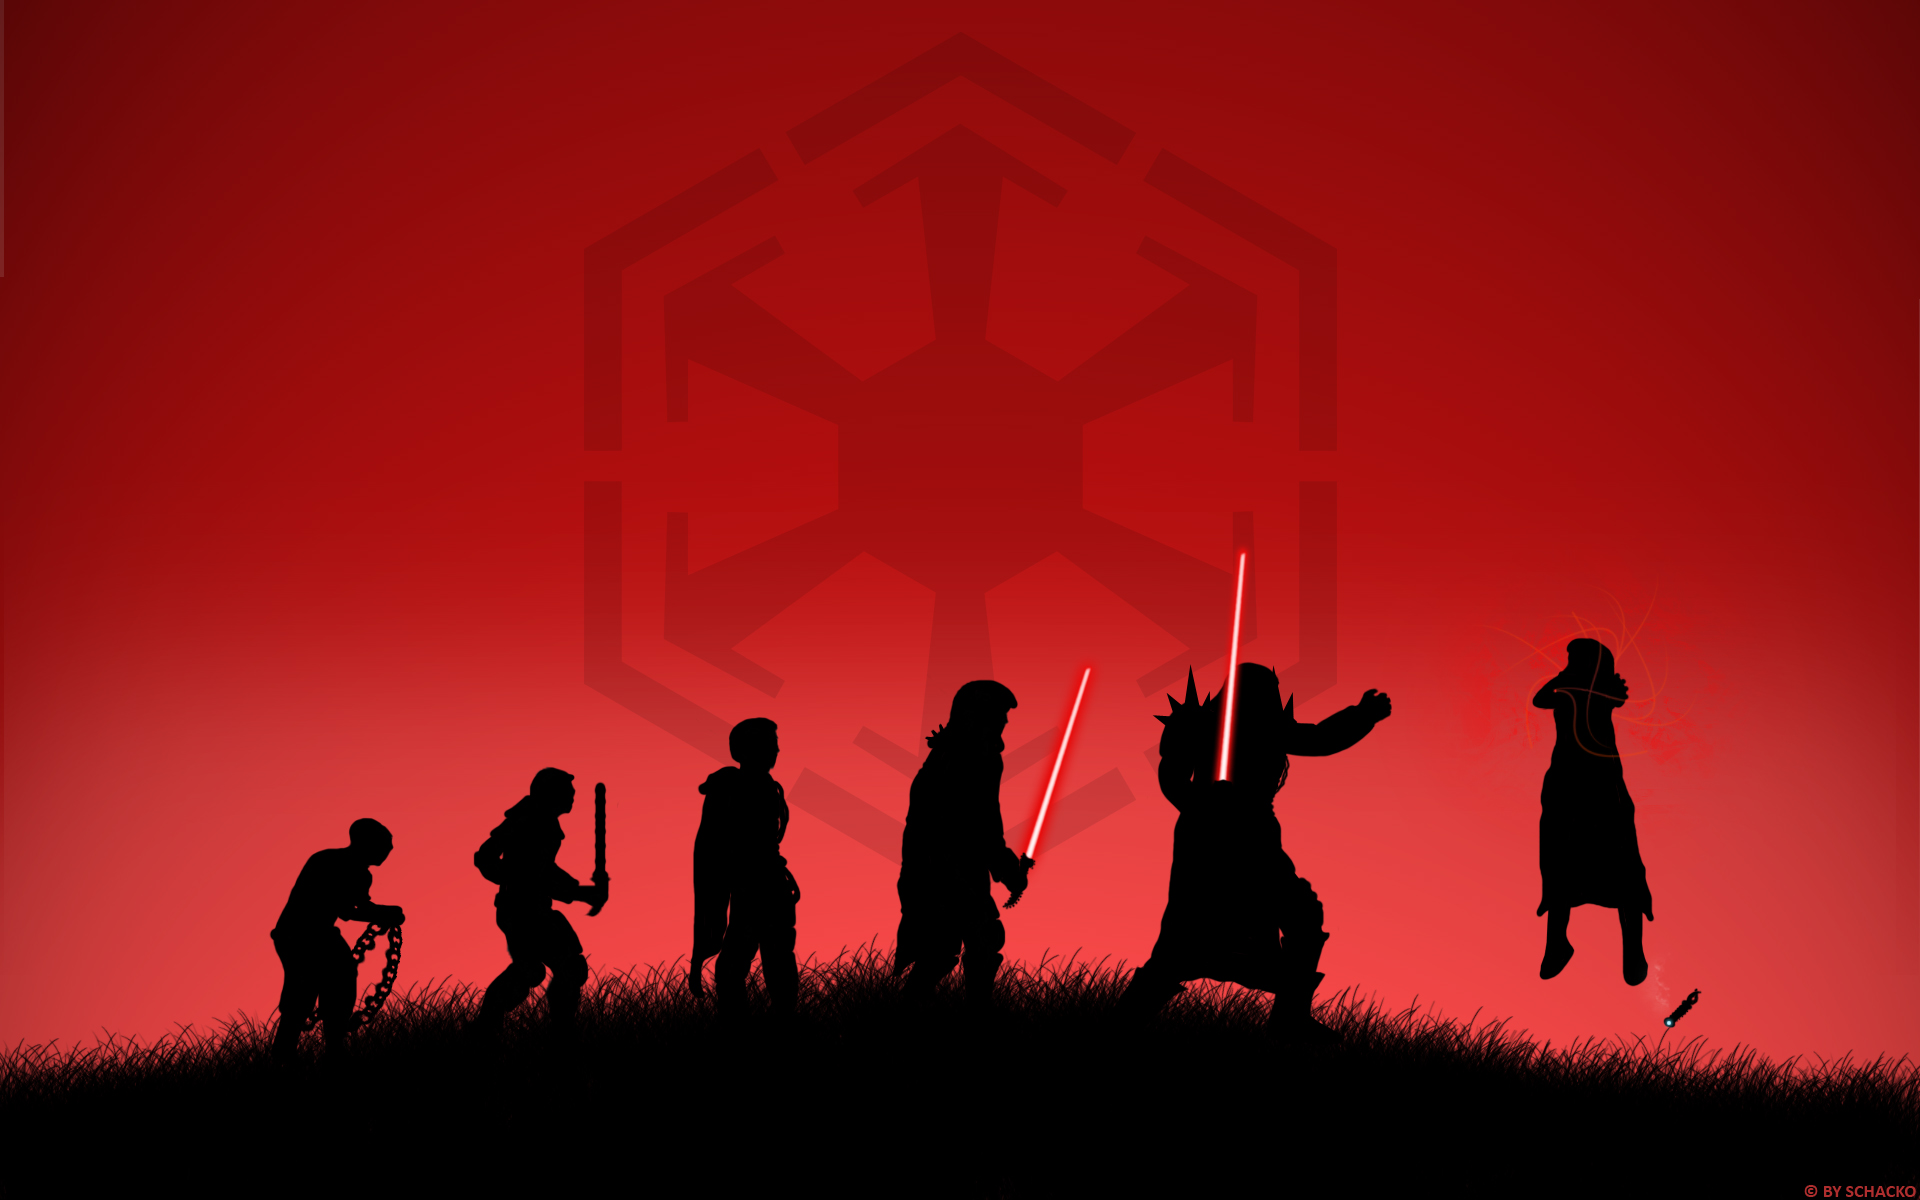 Sith Code Wallpaper Swtor sith warrior evolution 1920x1200